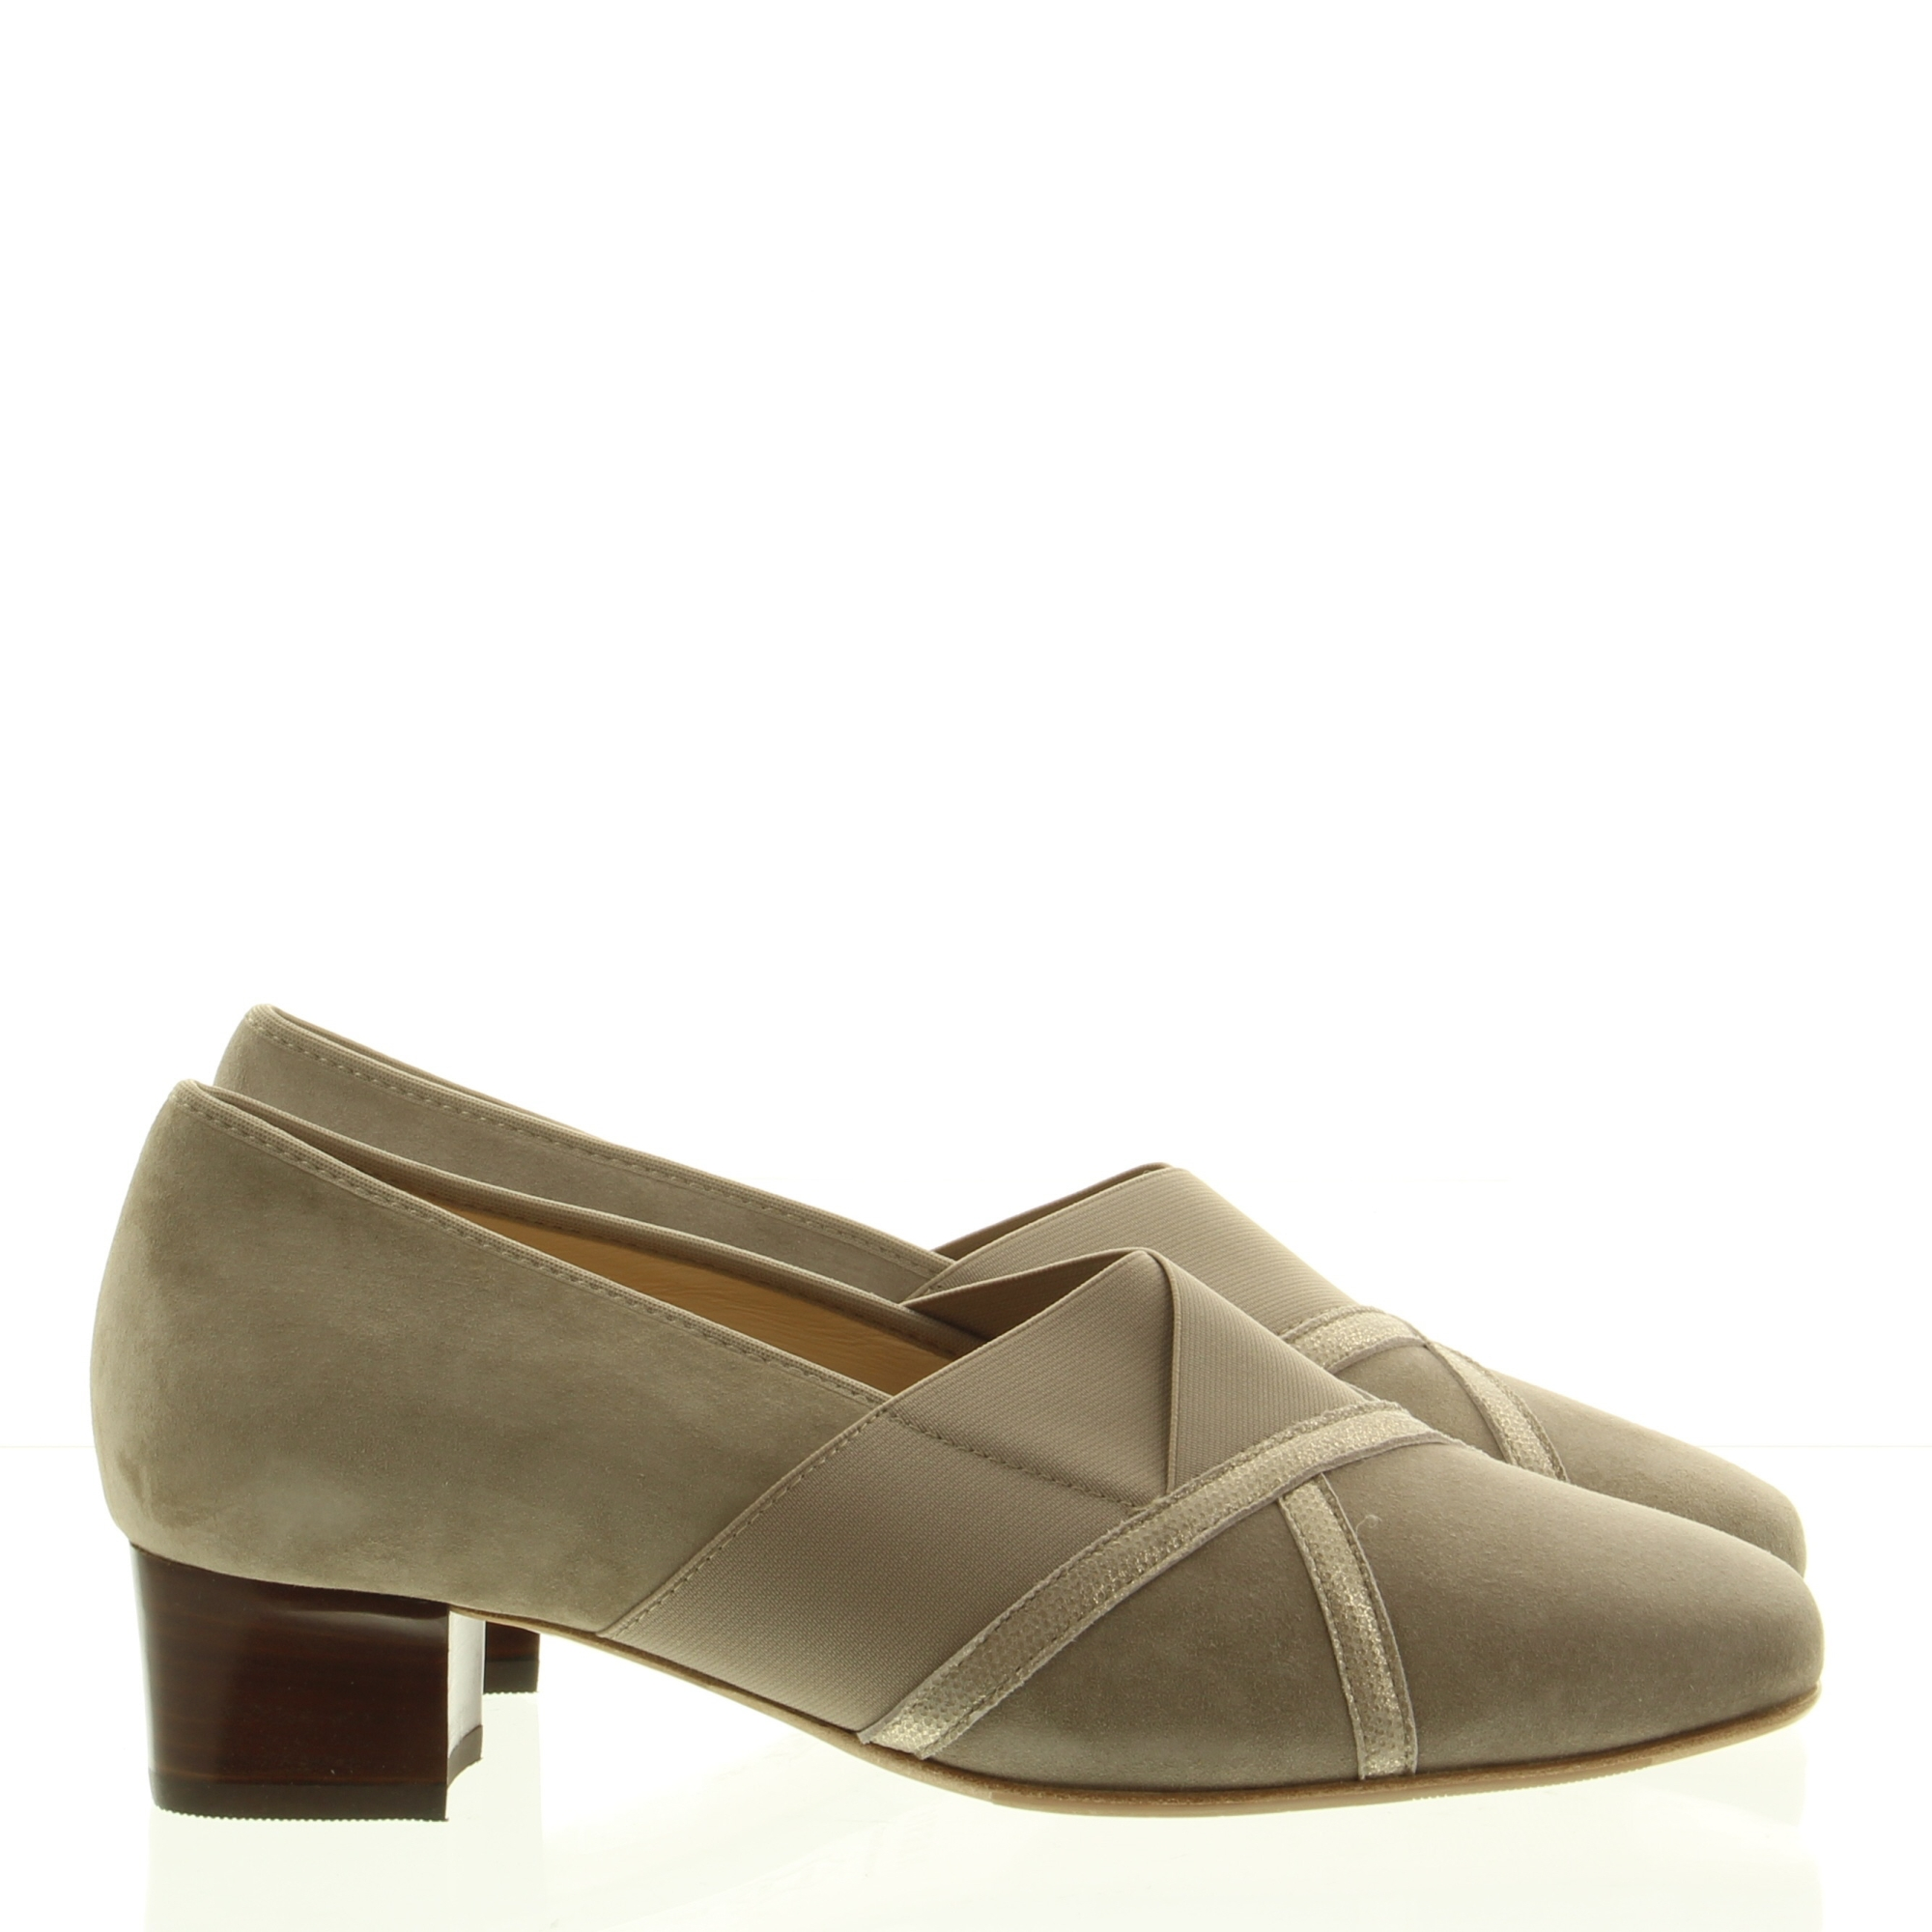 Hassia Shoes 303338 Evelyn 1900 Taupe Luna